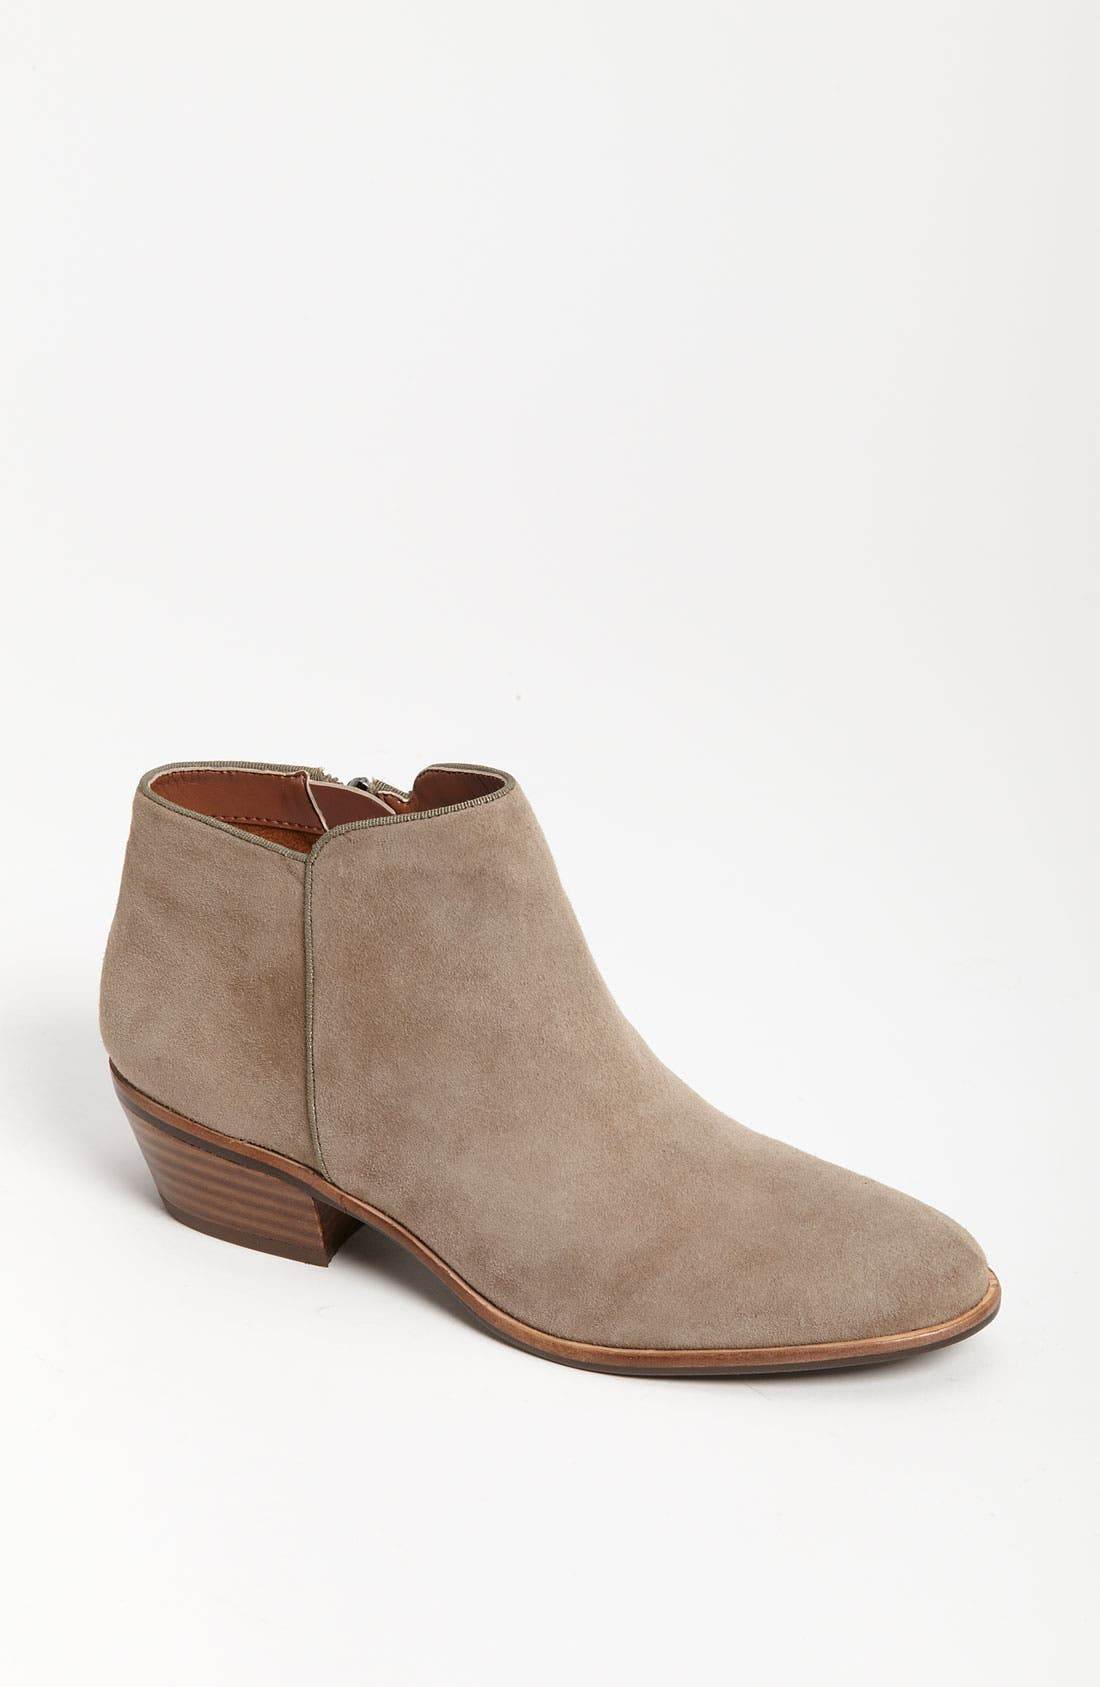 Alternate Image 1 Selected - Sam Edelman 'Petty' Chelsea Boot (Women)